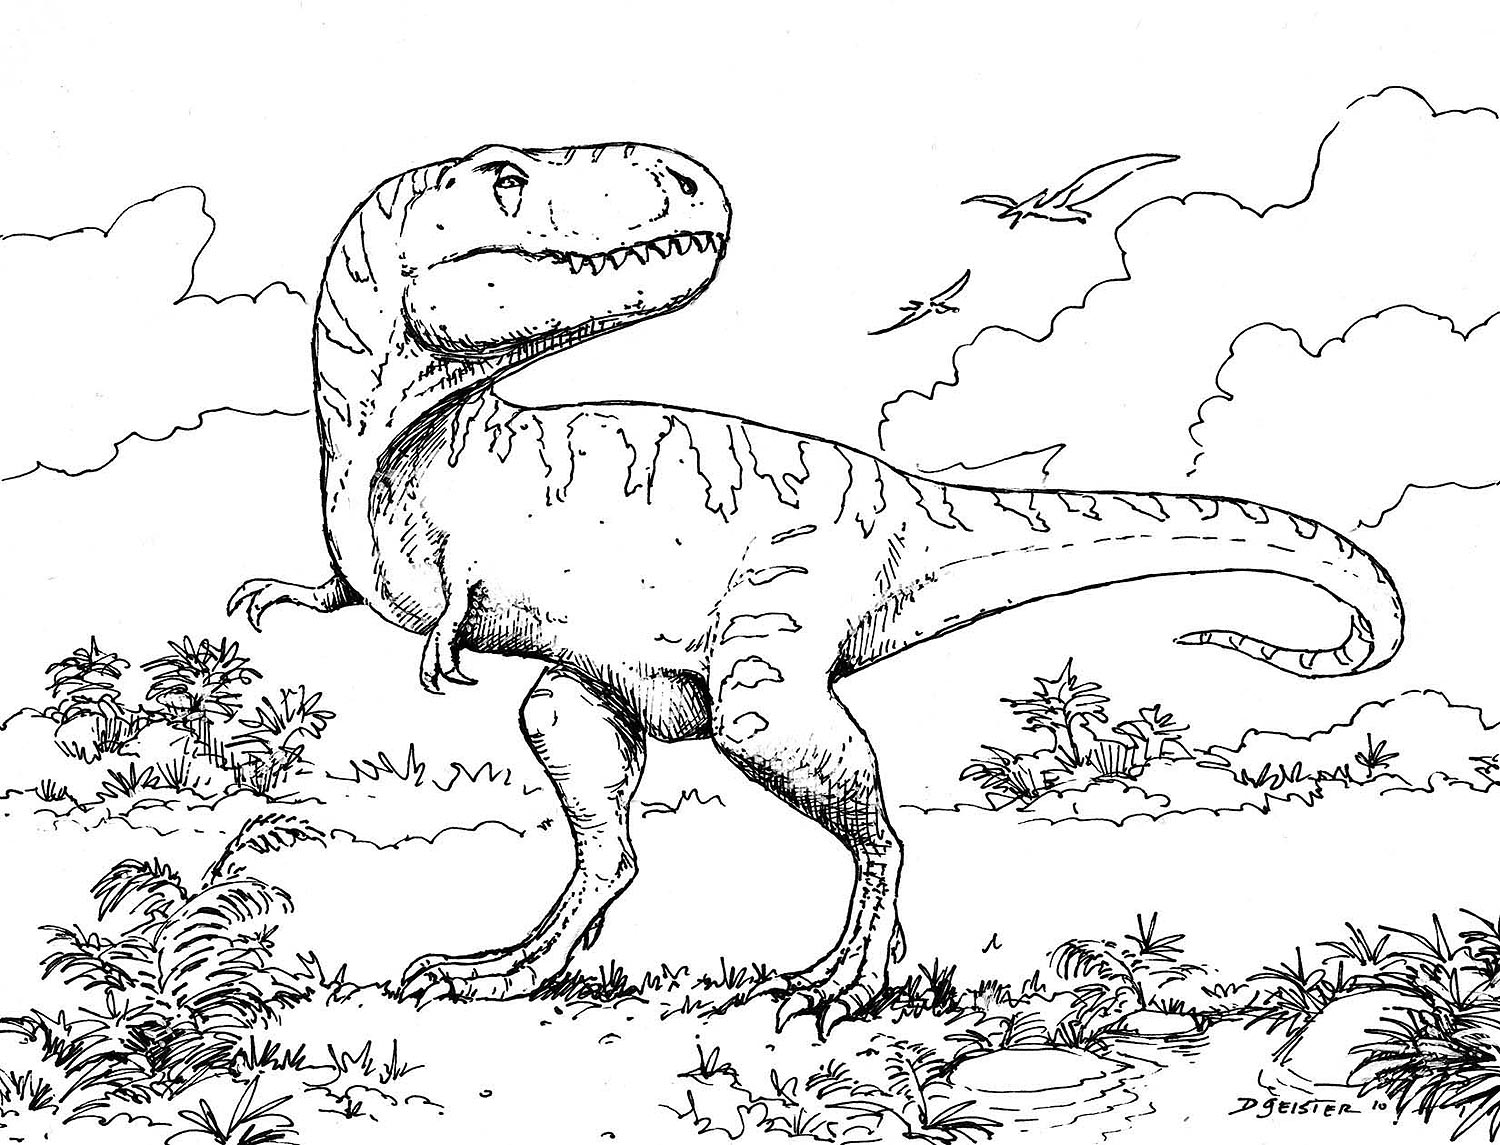 Dinosaur coloring in pictures - Free Printable Dinosaur Coloring Pages For Kids